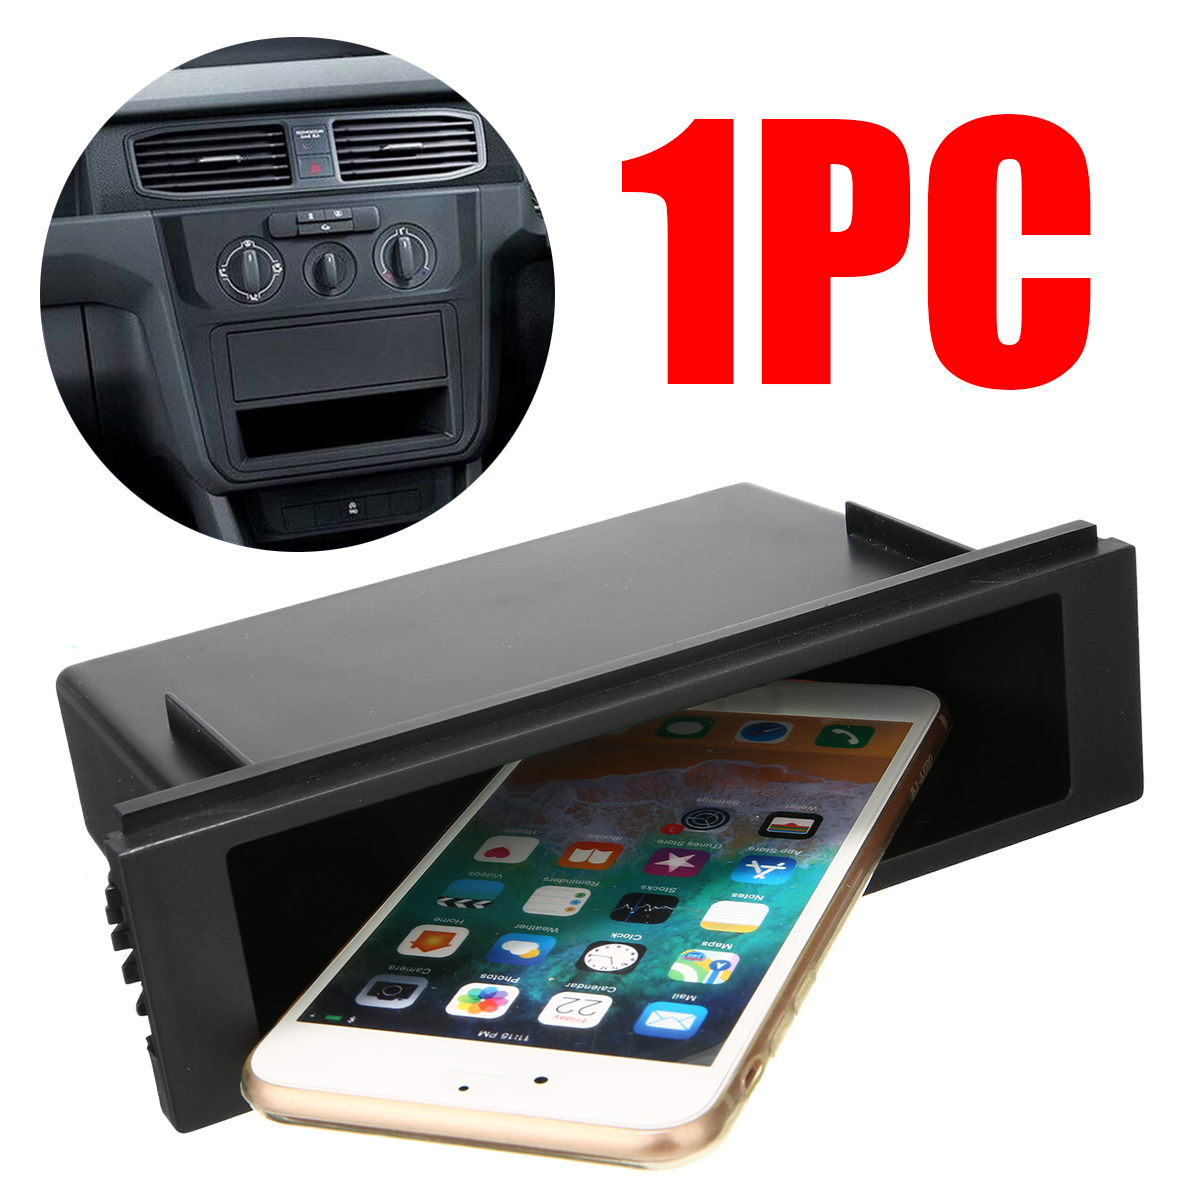 Universal Single 1 Din Car Vehicle Radio Compartment Installation Storage Box Pocket Dash DIY Kit Accessories 18.9x10.7x5.3cm image